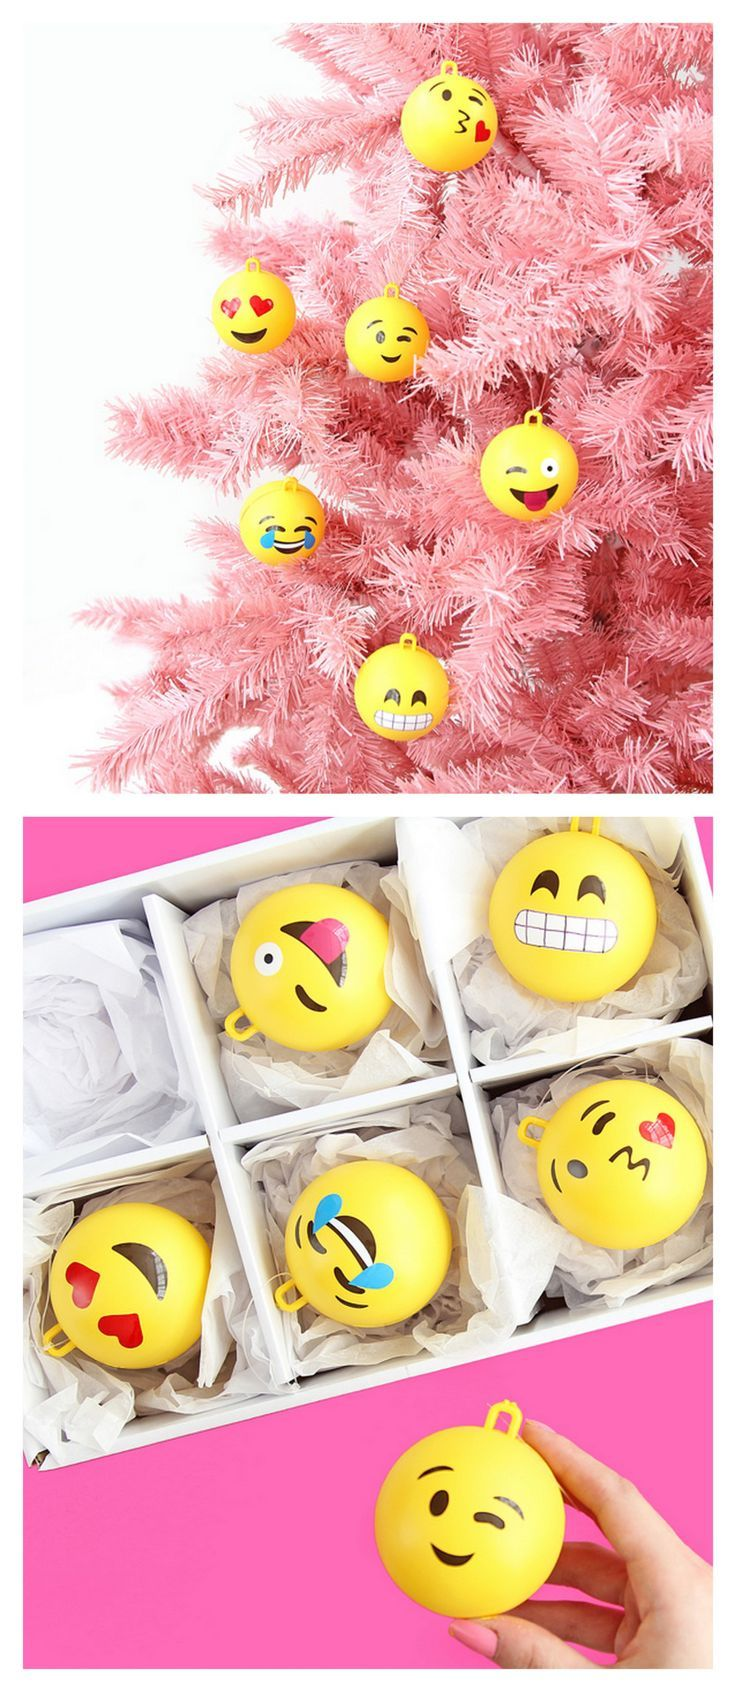 Diy christmas ornaments for newlyweds - Diy Emoji Ornament Tutorial From A Subtle Revelry Make These Fun Diy Emoji Ornaments With